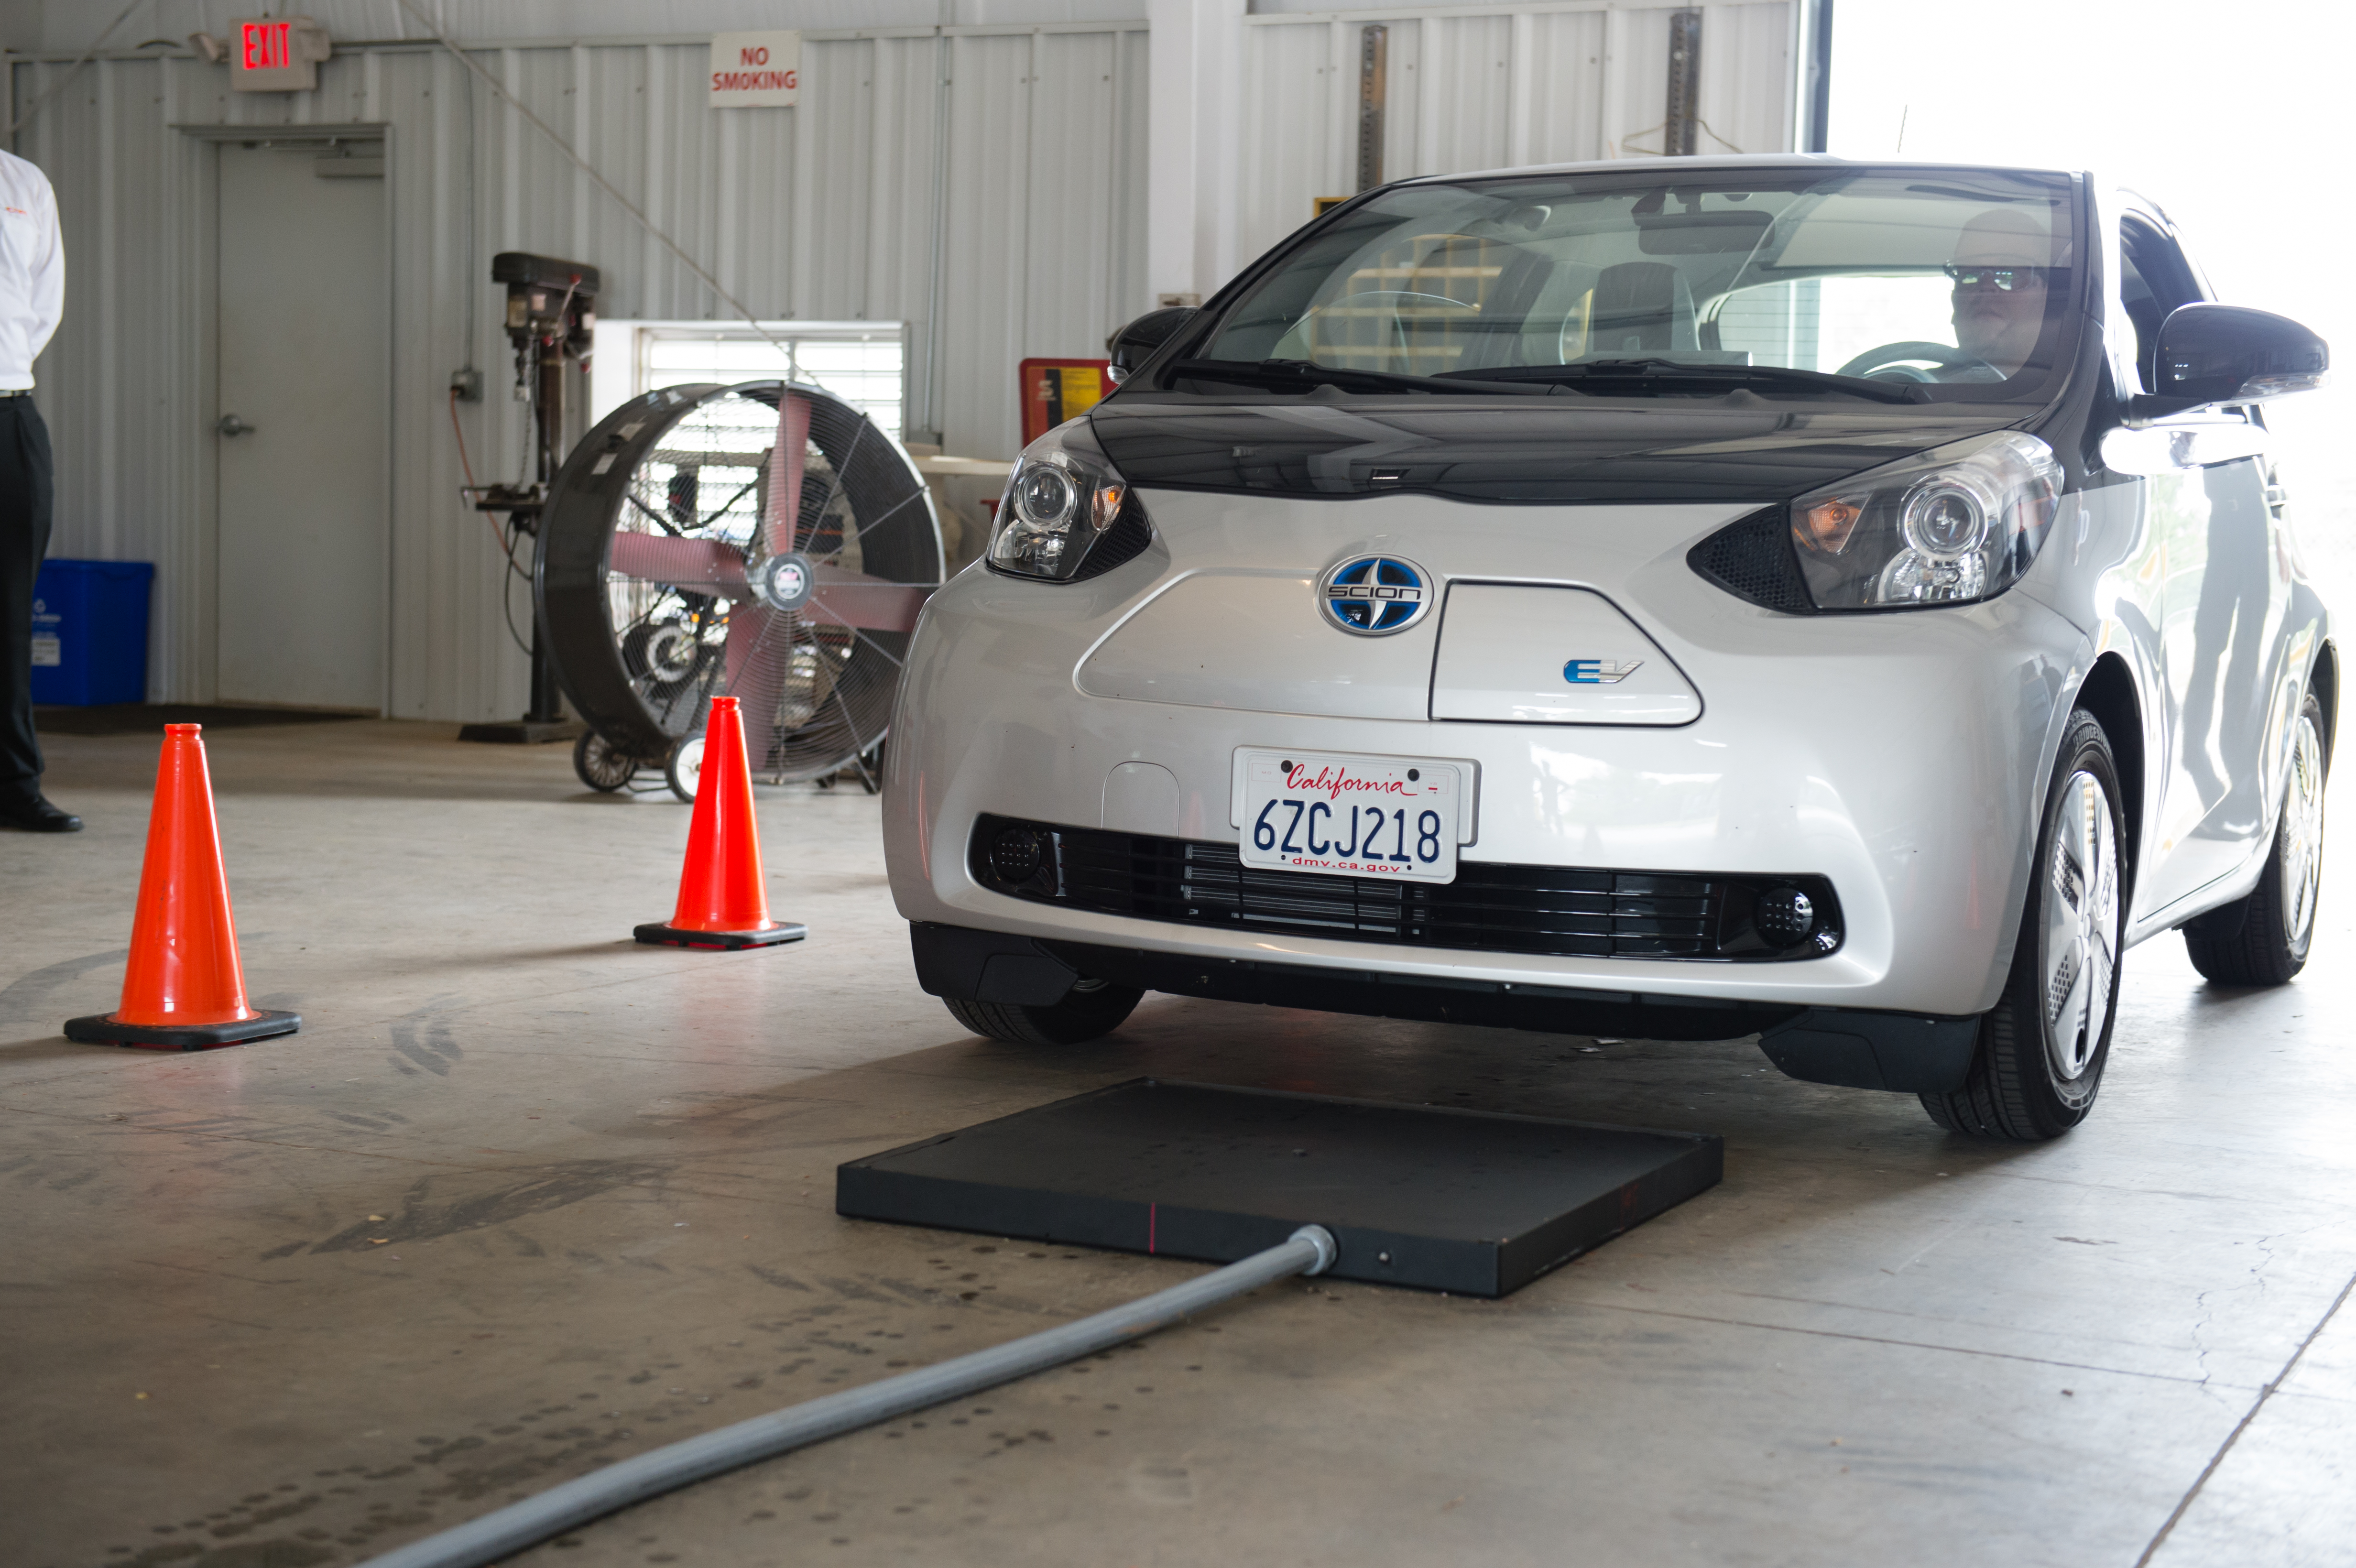 ITIC Automotive Test Bed Offers Wireless Charging as a Service | 3BL ...